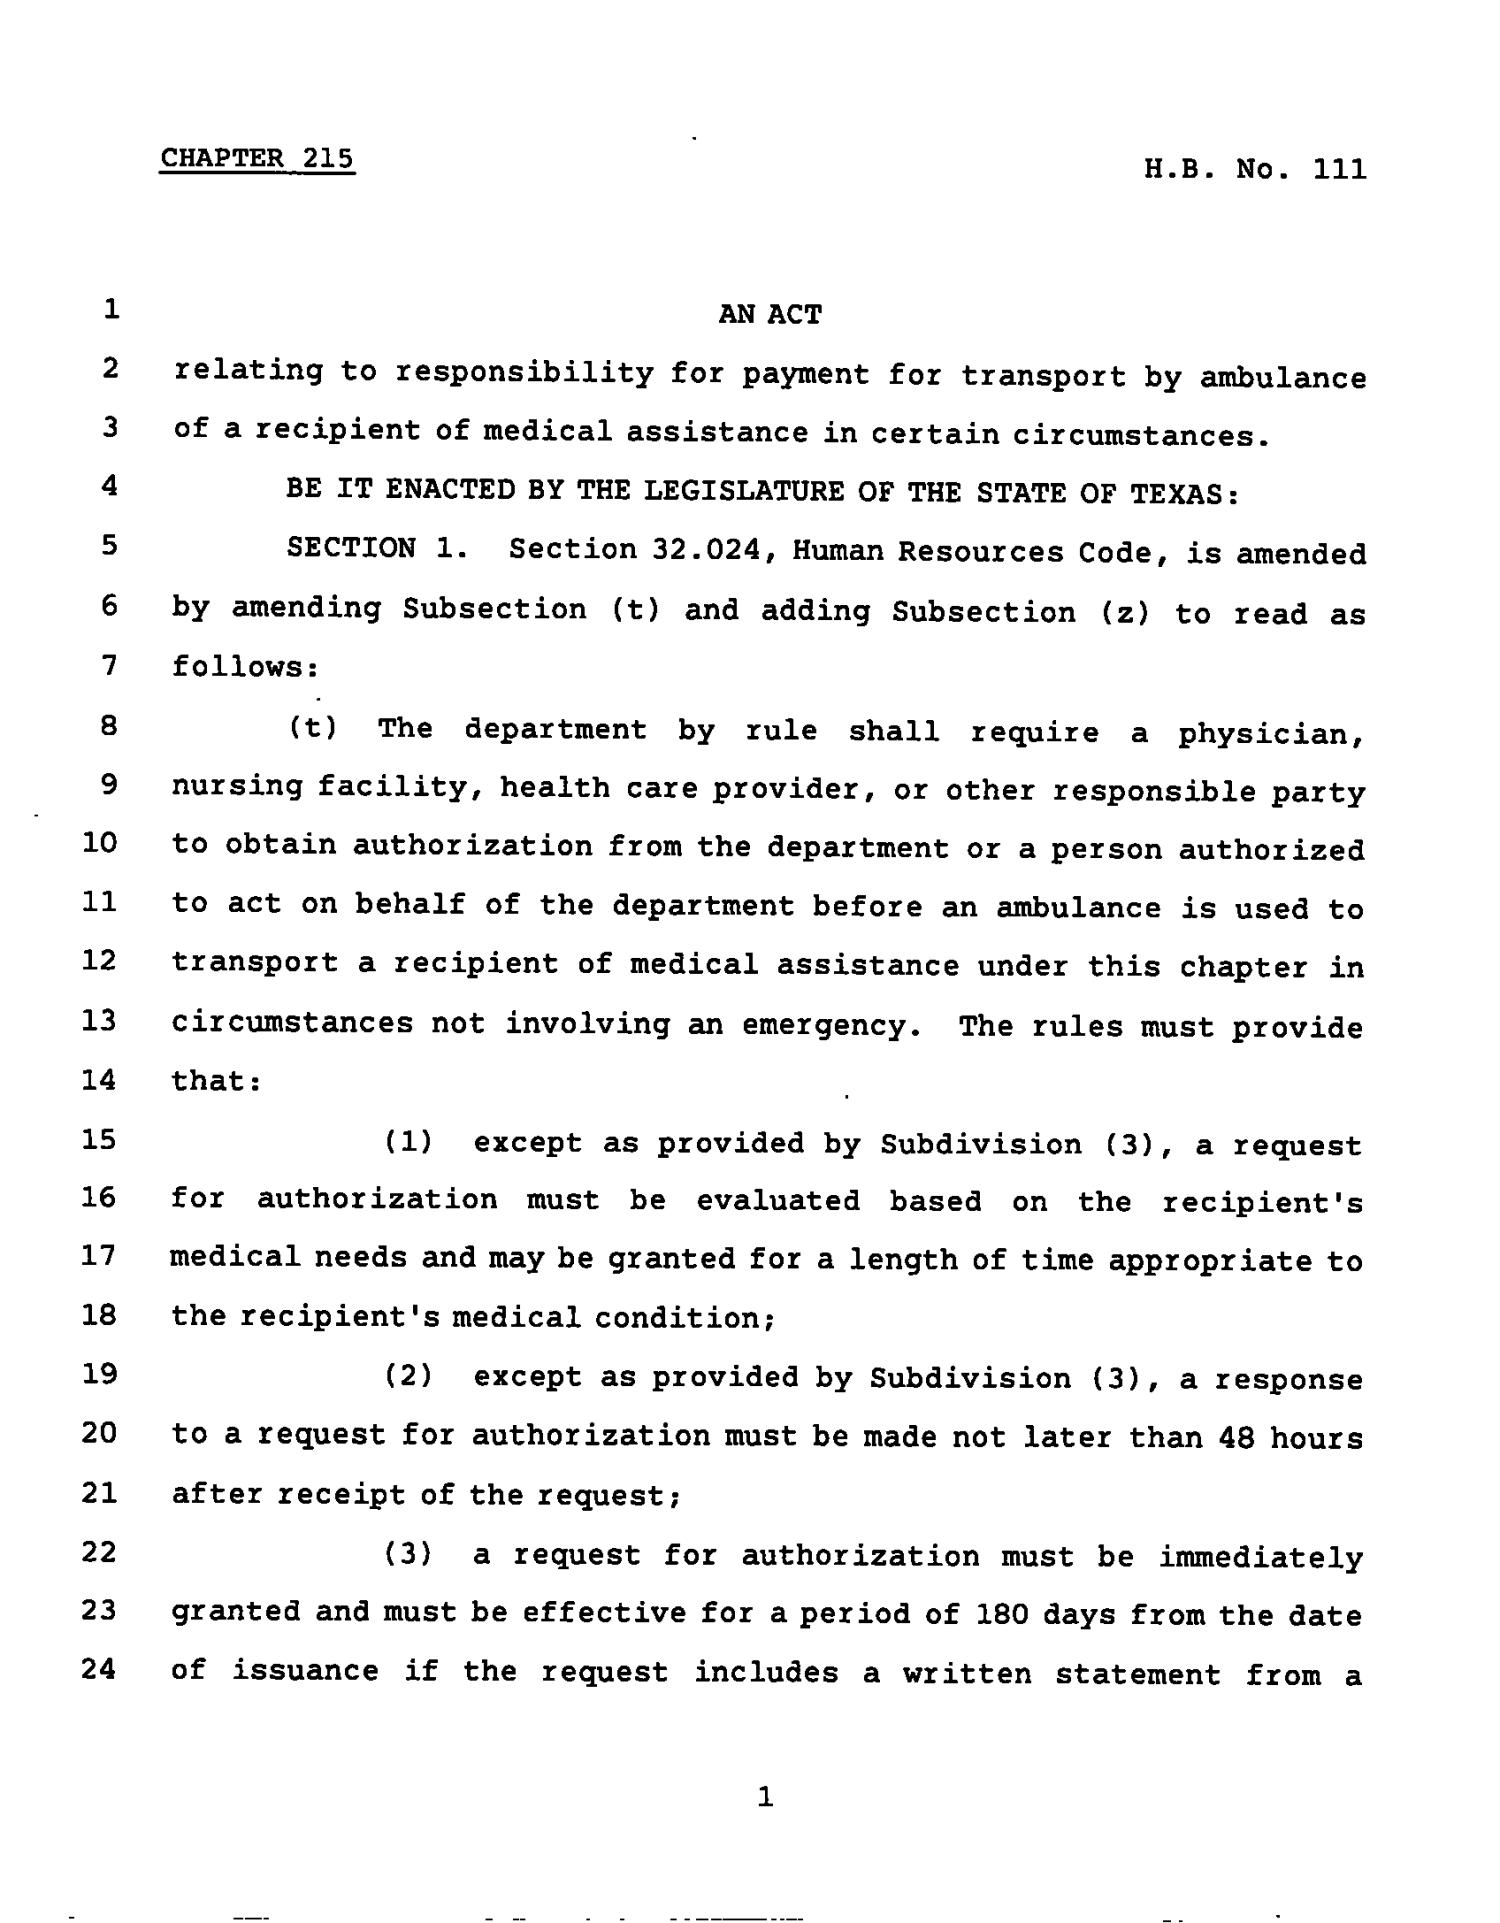 78th Texas Legislature, Regular Session, House Bill 111, Chapter 215                                                                                                      [Sequence #]: 1 of 4